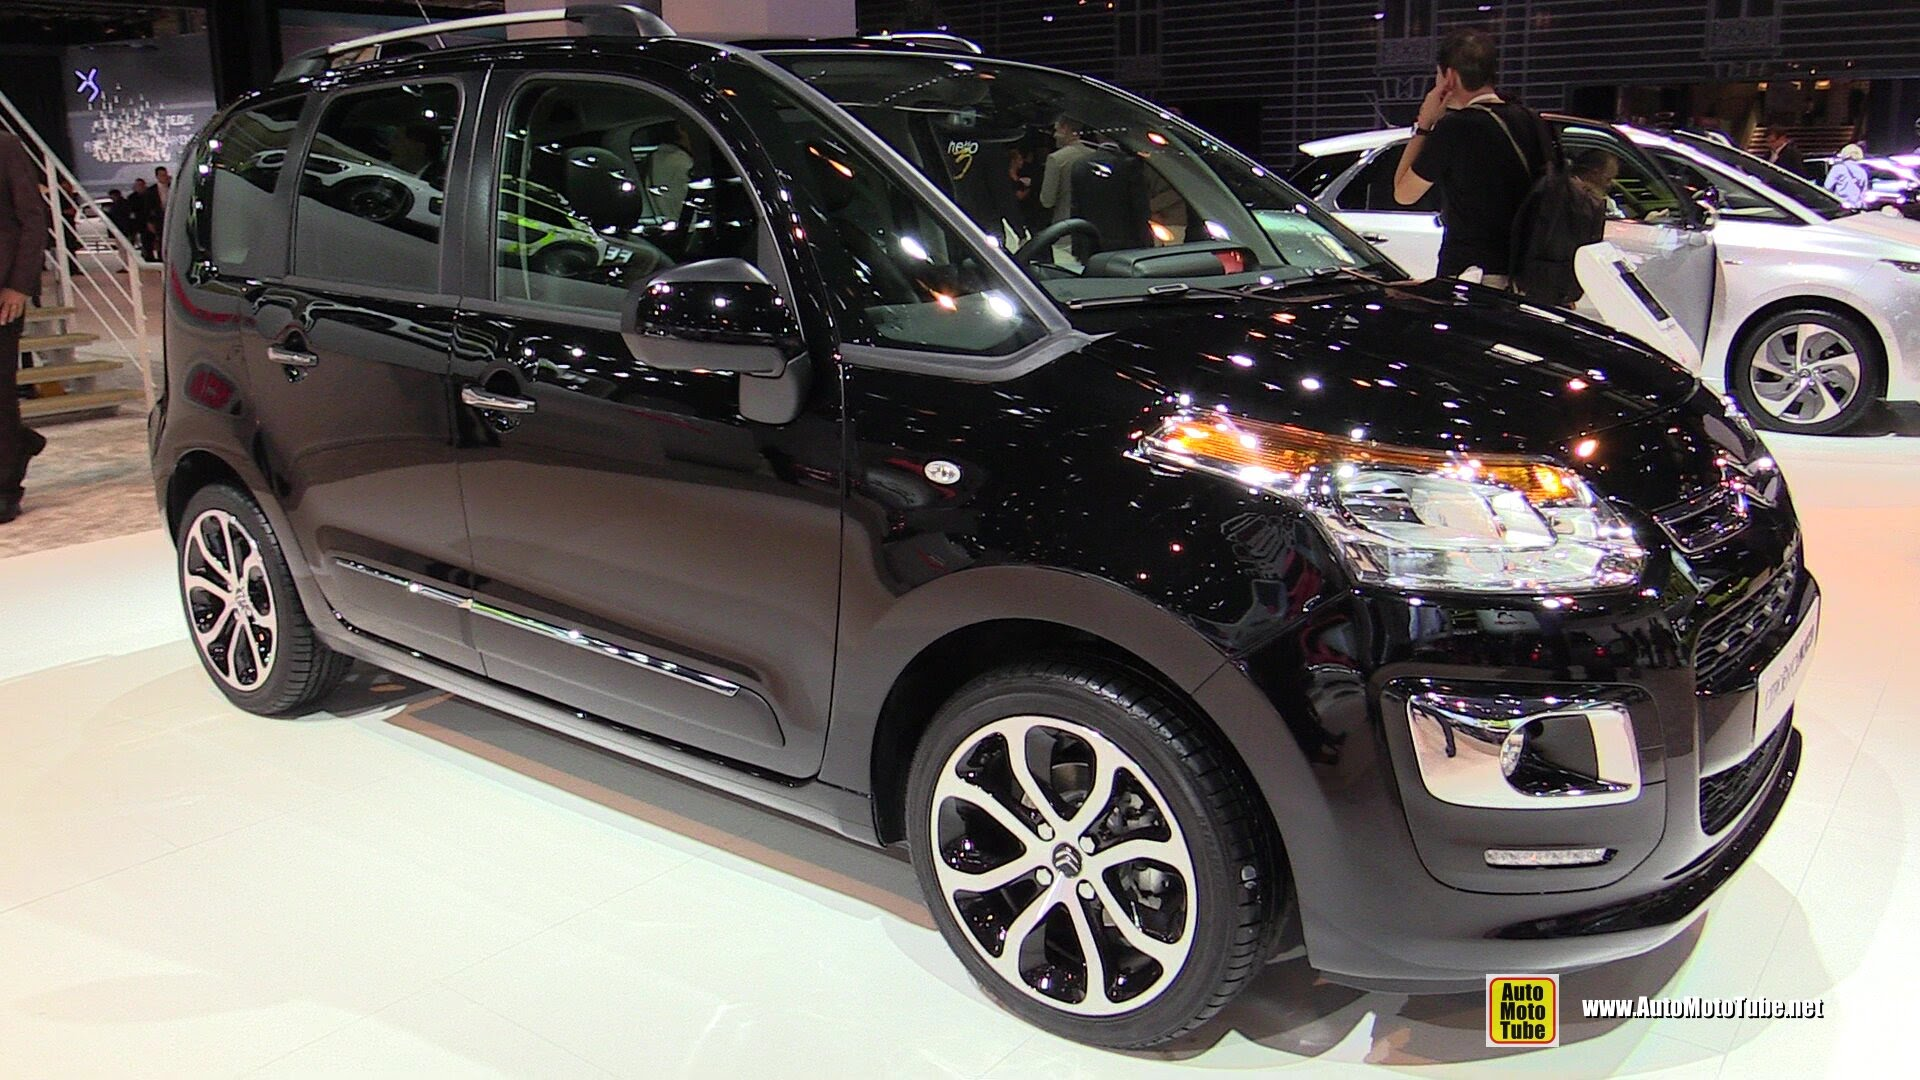 Citroen C3 Picasso I Restyling 2012 - now Compact MPV #2